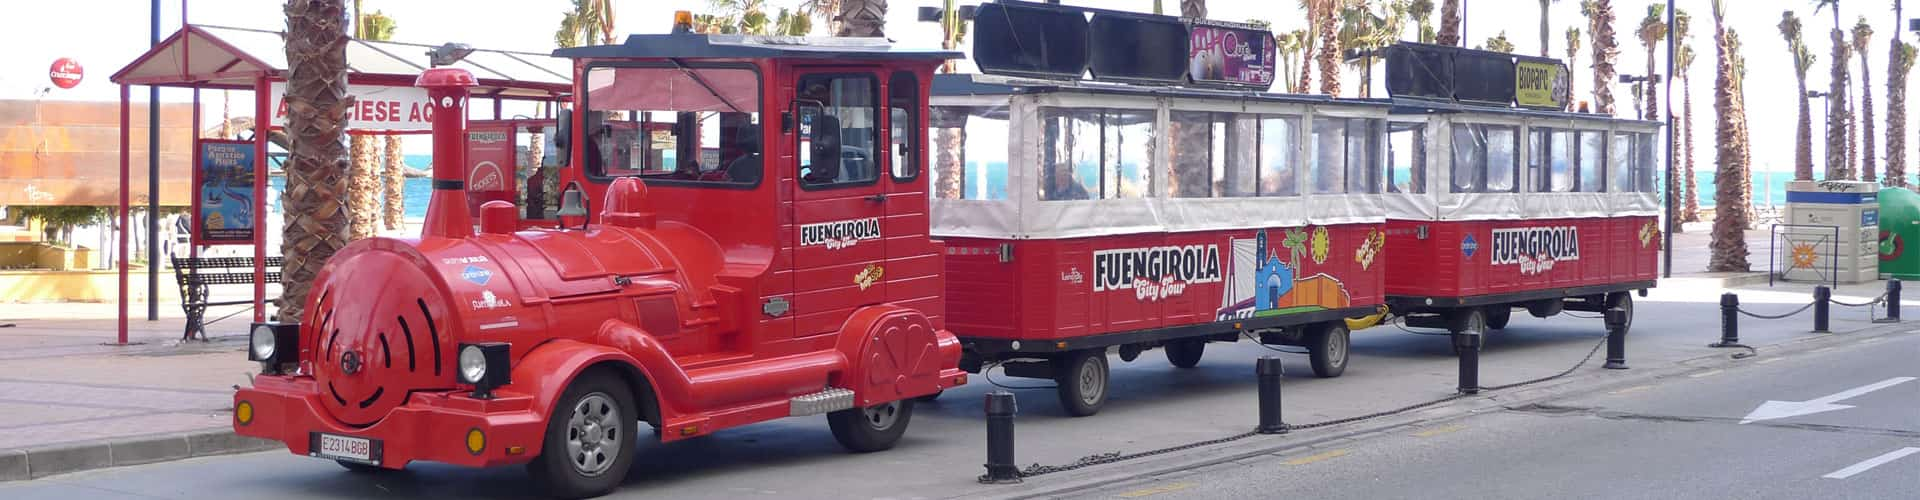 Fuengirola City Tour Tren